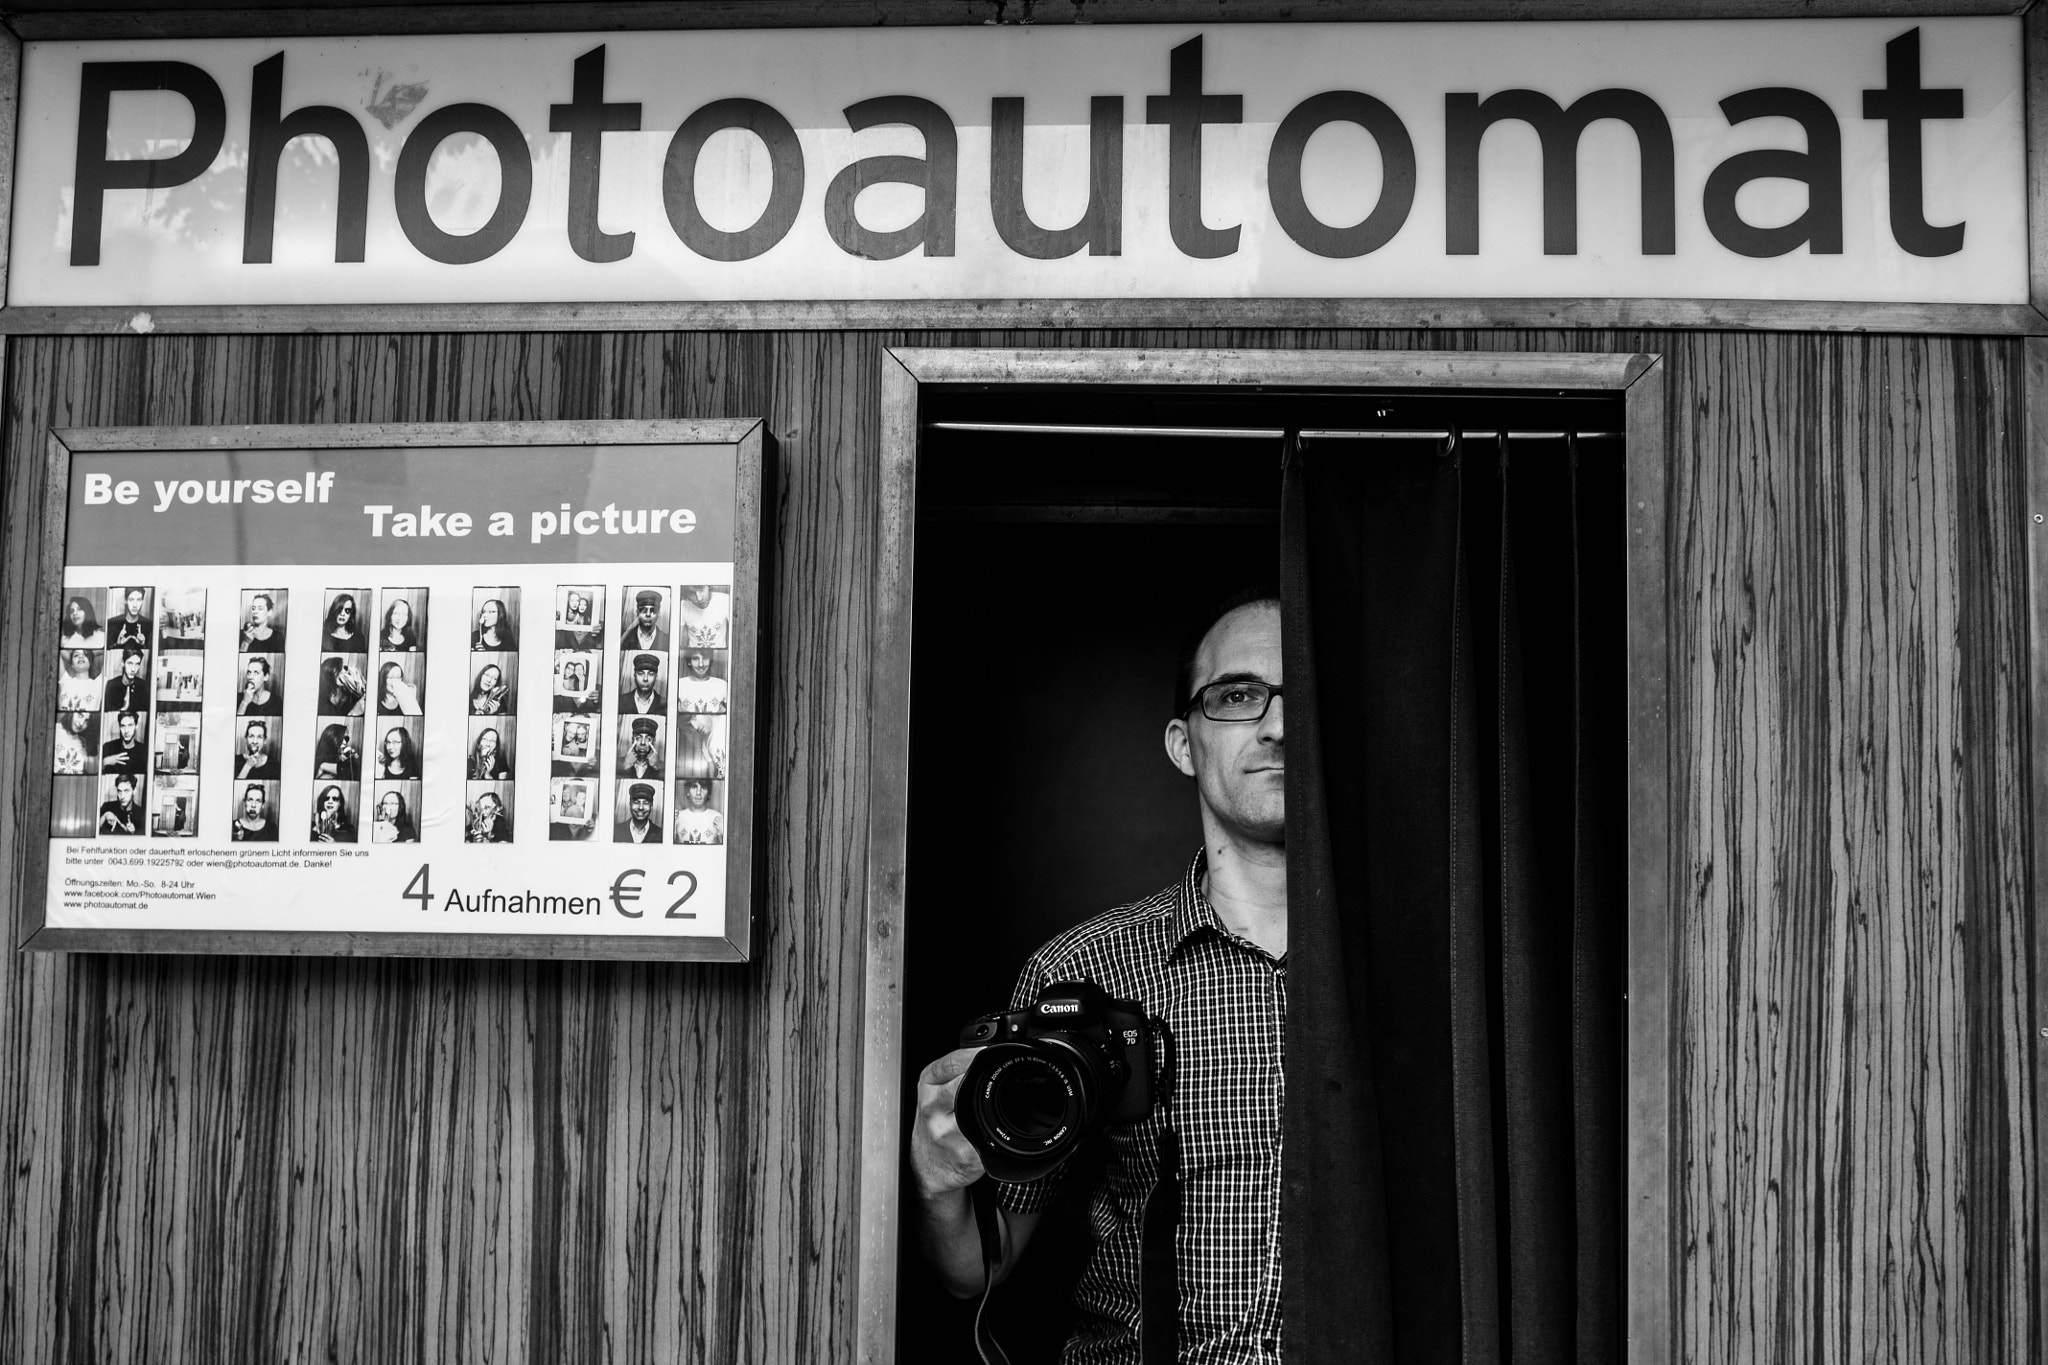 Photograph Photoautomat by Michael Writer on 500px